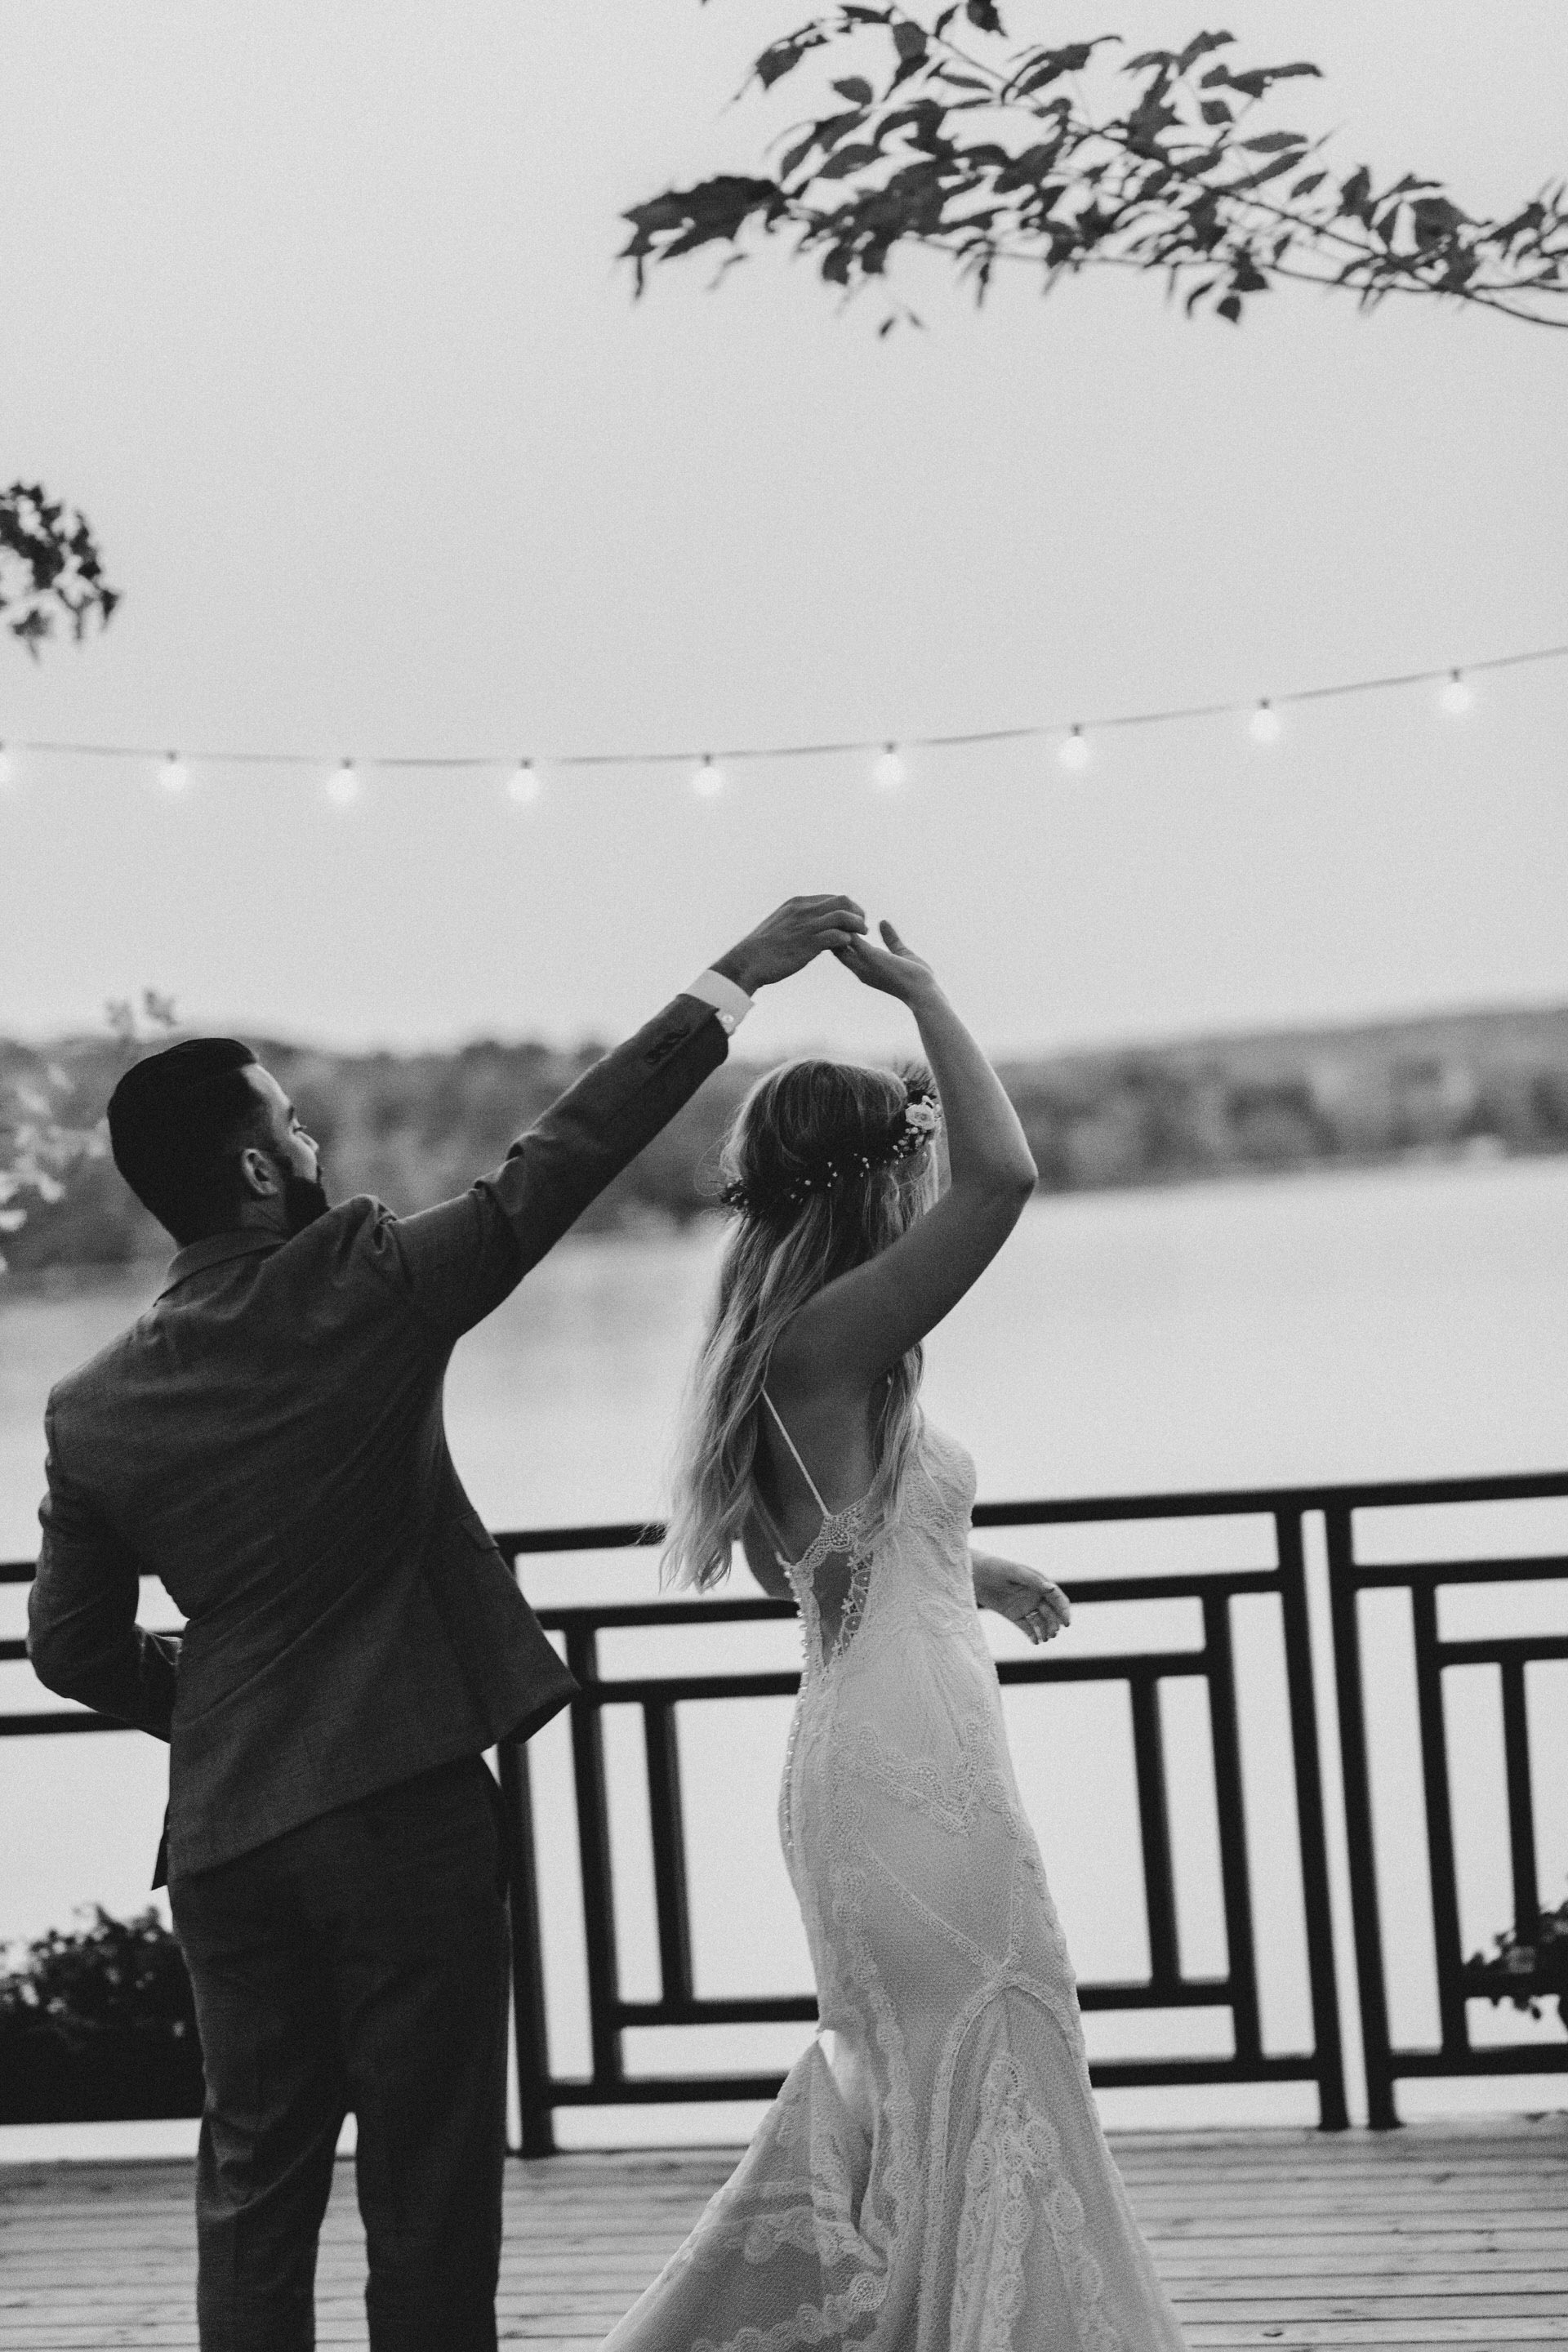 Muskoka Wedding - dancing under the open sky